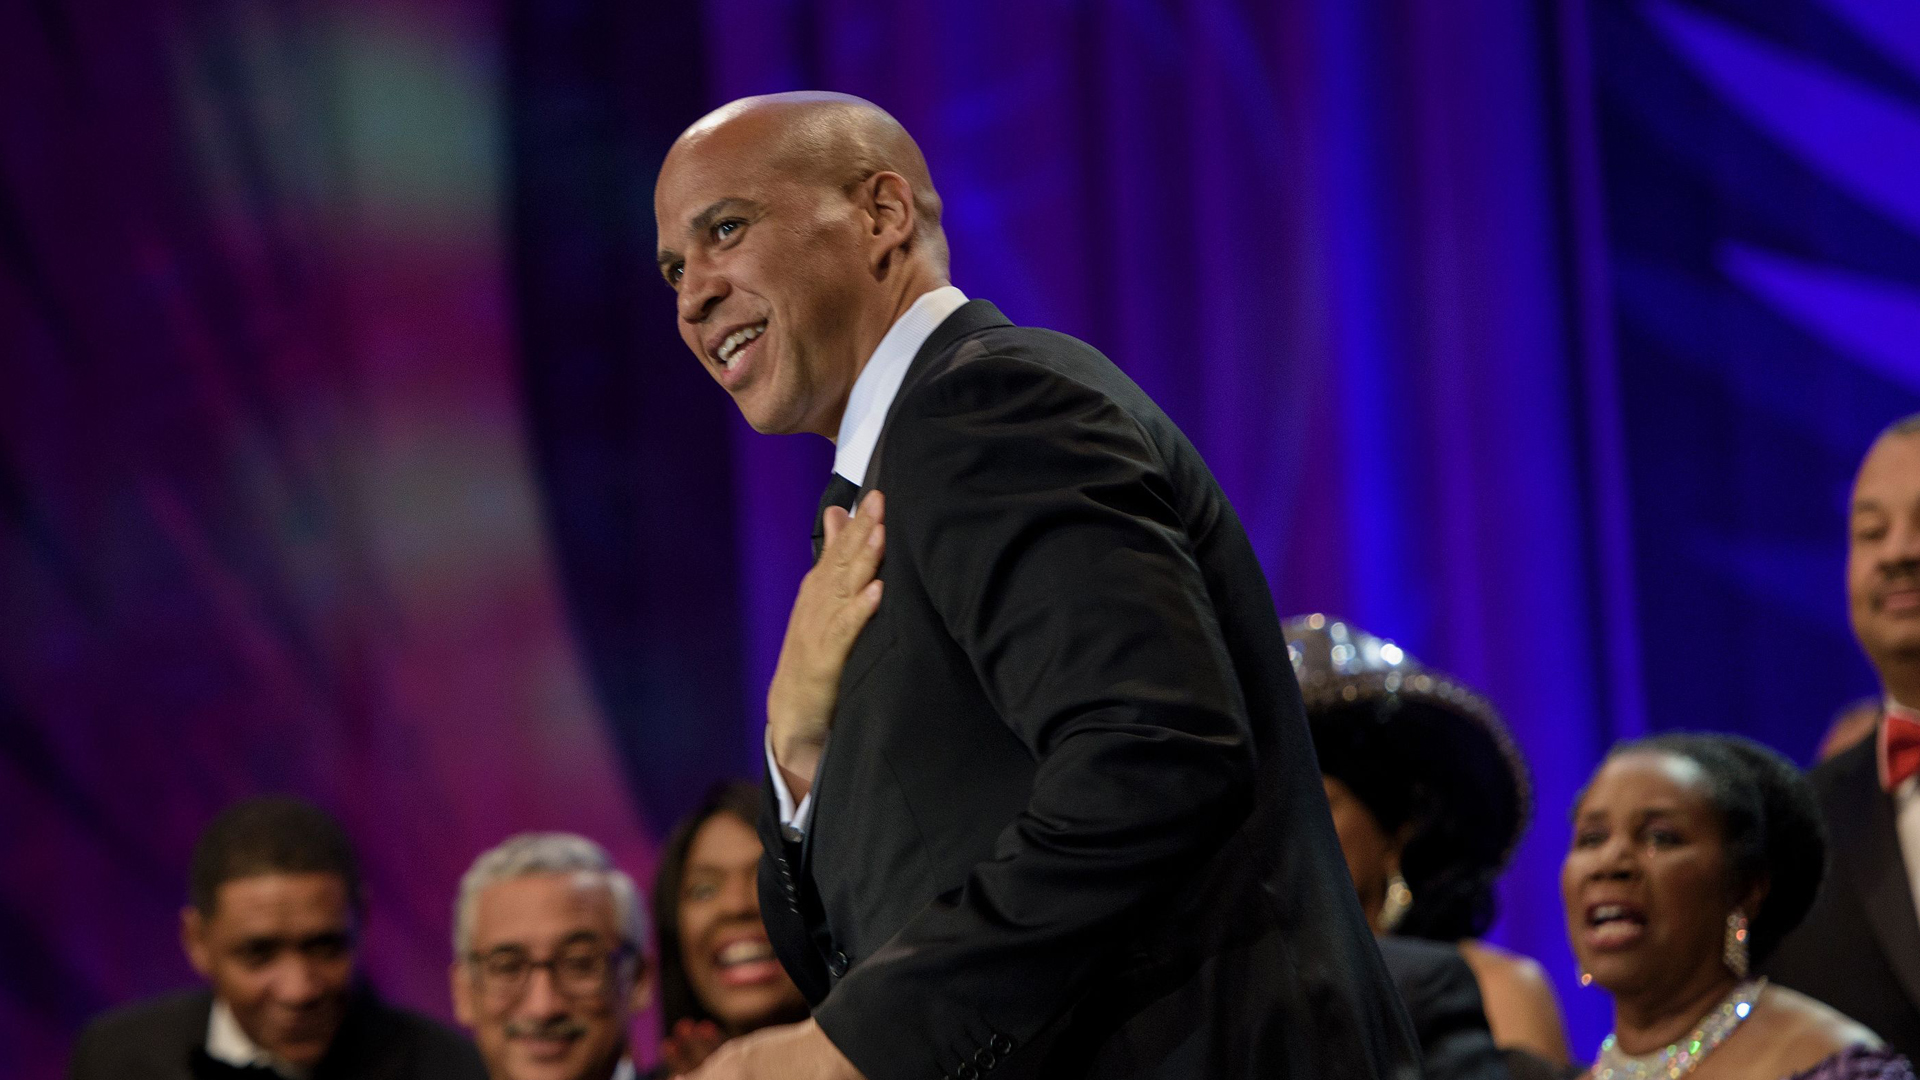 Rep. Cory Booker (D-NJ) arrives while being introduced with other African American members of the US Congress during the Congressional Black Caucus Foundation's Phoenix Awards Dinner Sept. 17, 2016, in Washington, D.C.(Credit: BRENDAN SMIALOWSKI/AFP/Getty Images)